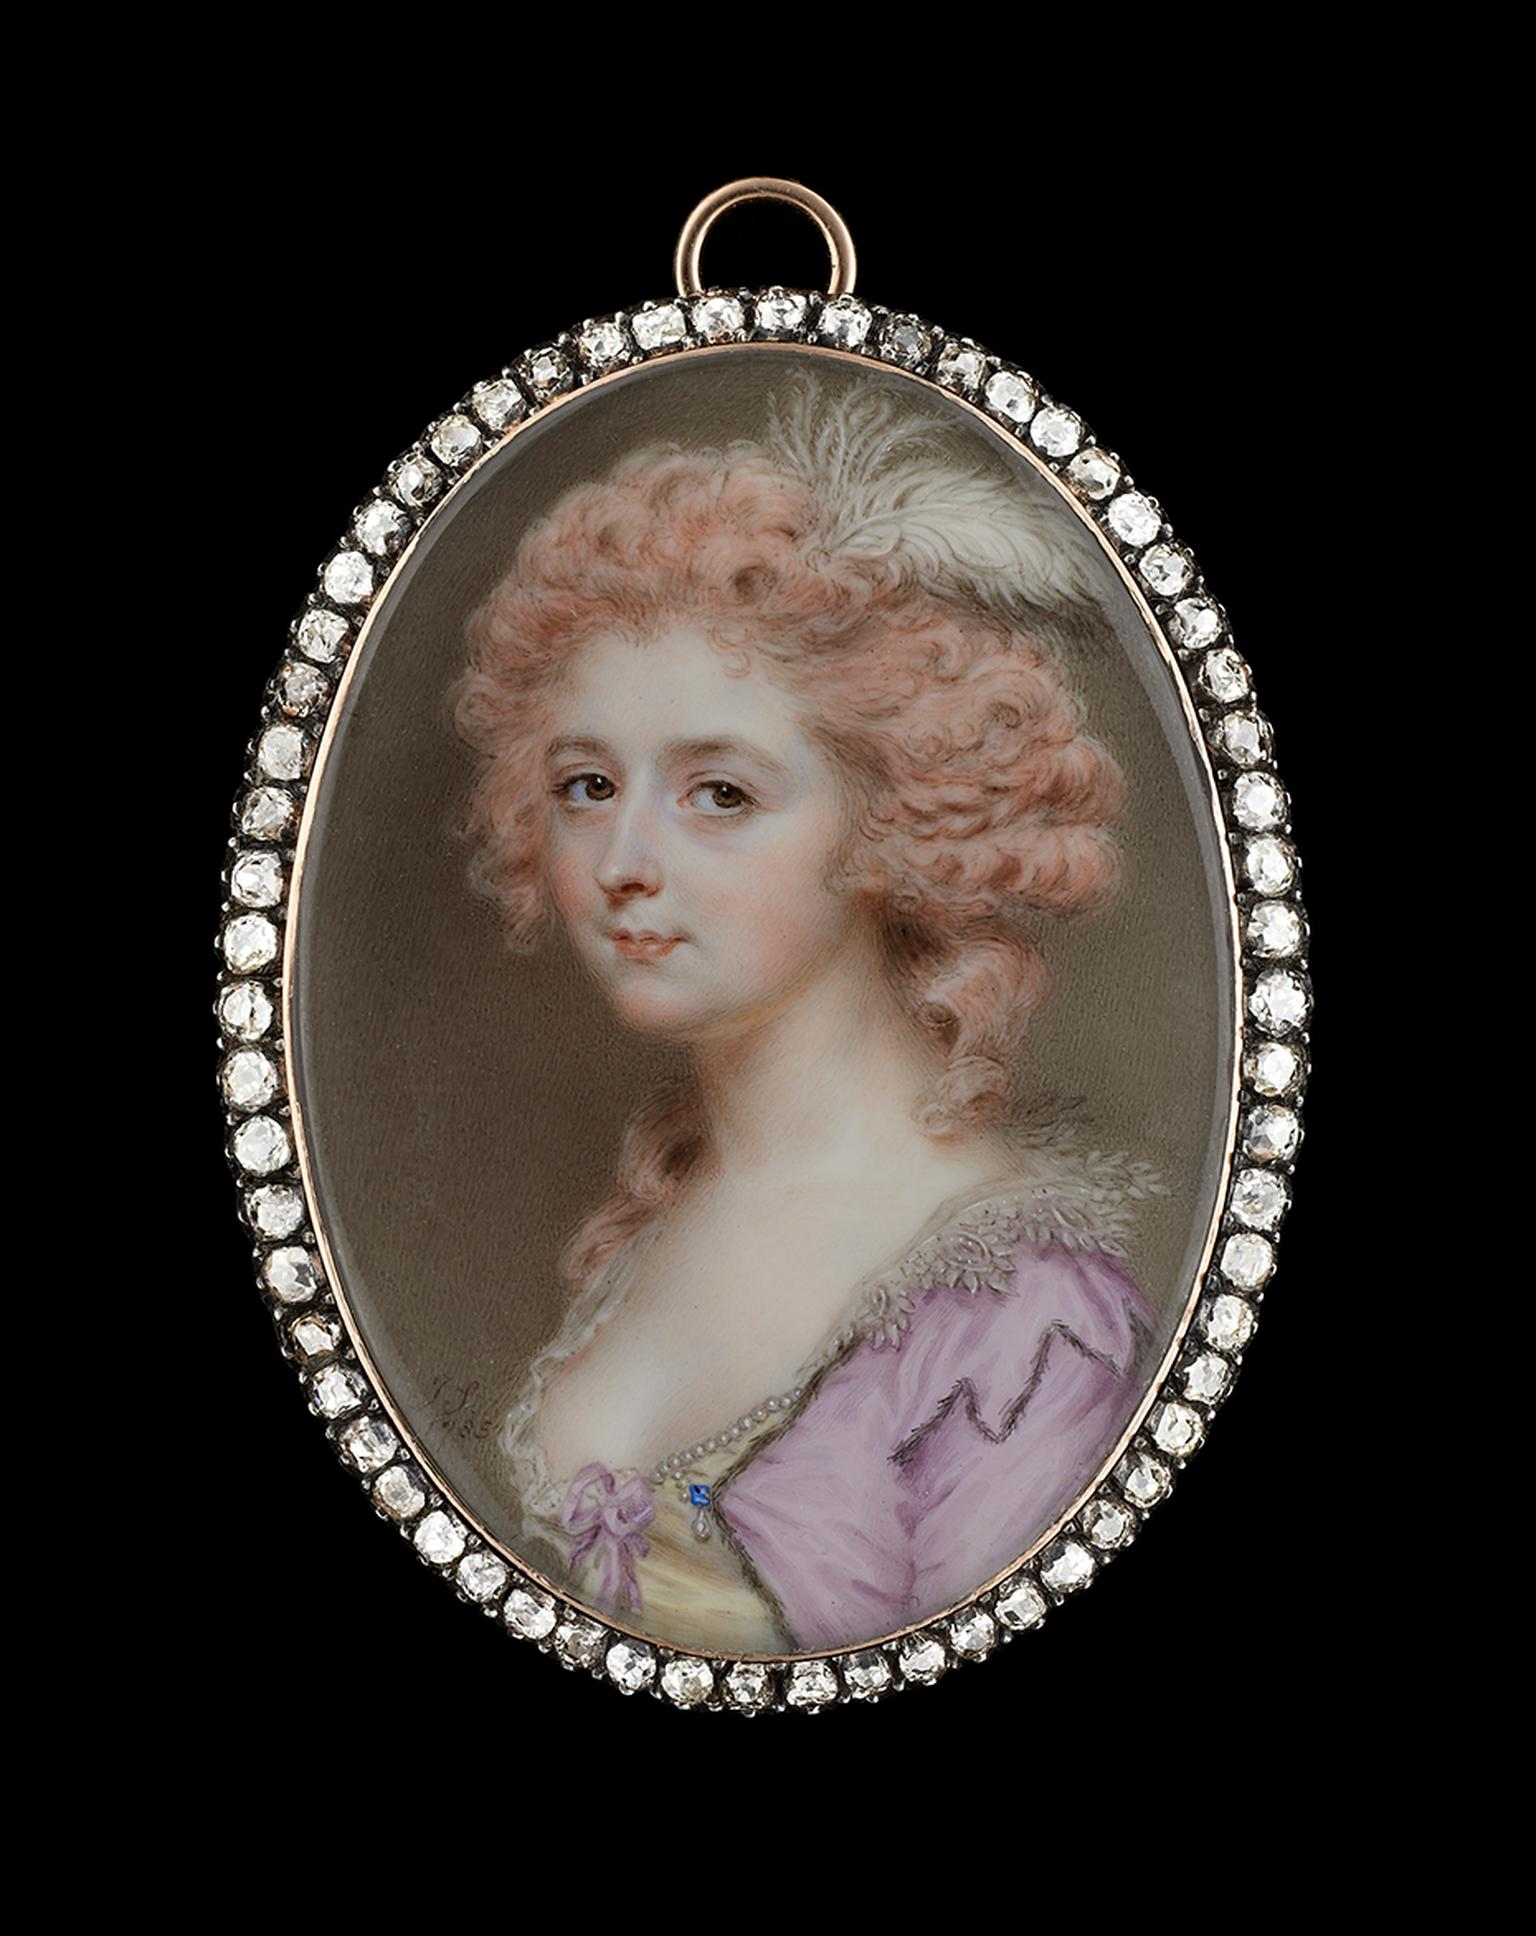 John Smart diamond encrusted miniature depicting a lady wearing a dress with a jewelled pearl and sapphire clasp. Image by: Philip Mould & Company.